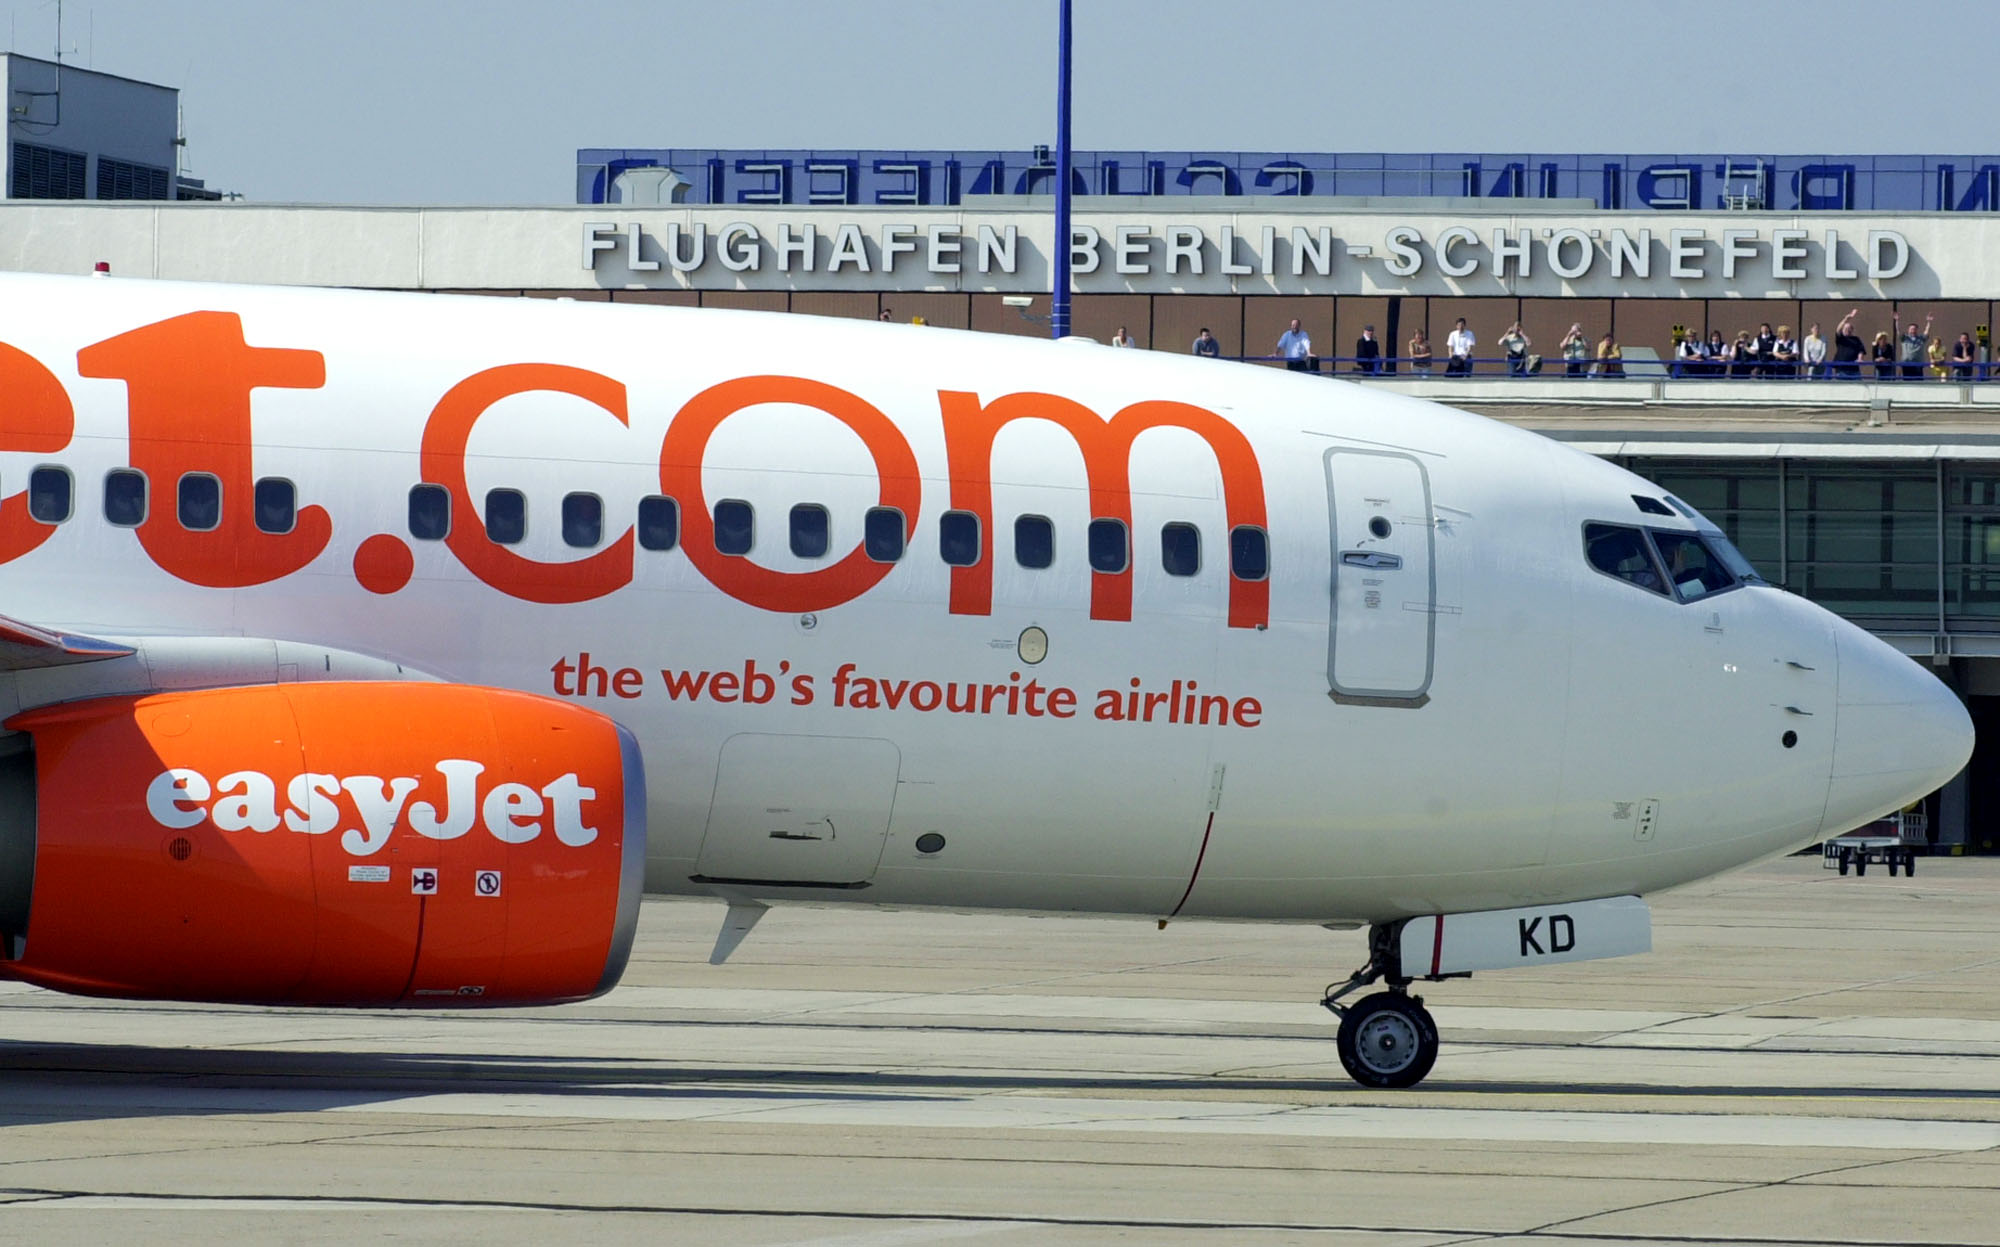 An Airbus A319 plane of British low-cost airline ''easyJet'' rolls on the tarmac pass the terminal building of the Berlin Schoenefeld airport after its first landing here on Wednesday afternoon, April 28, 2004. ''easyJet'' plans to establish 13 destinations in Europe from Schoenefeld in the next six weeks making the former Communist East German GDR airport the airline's biggest base outside the UK.